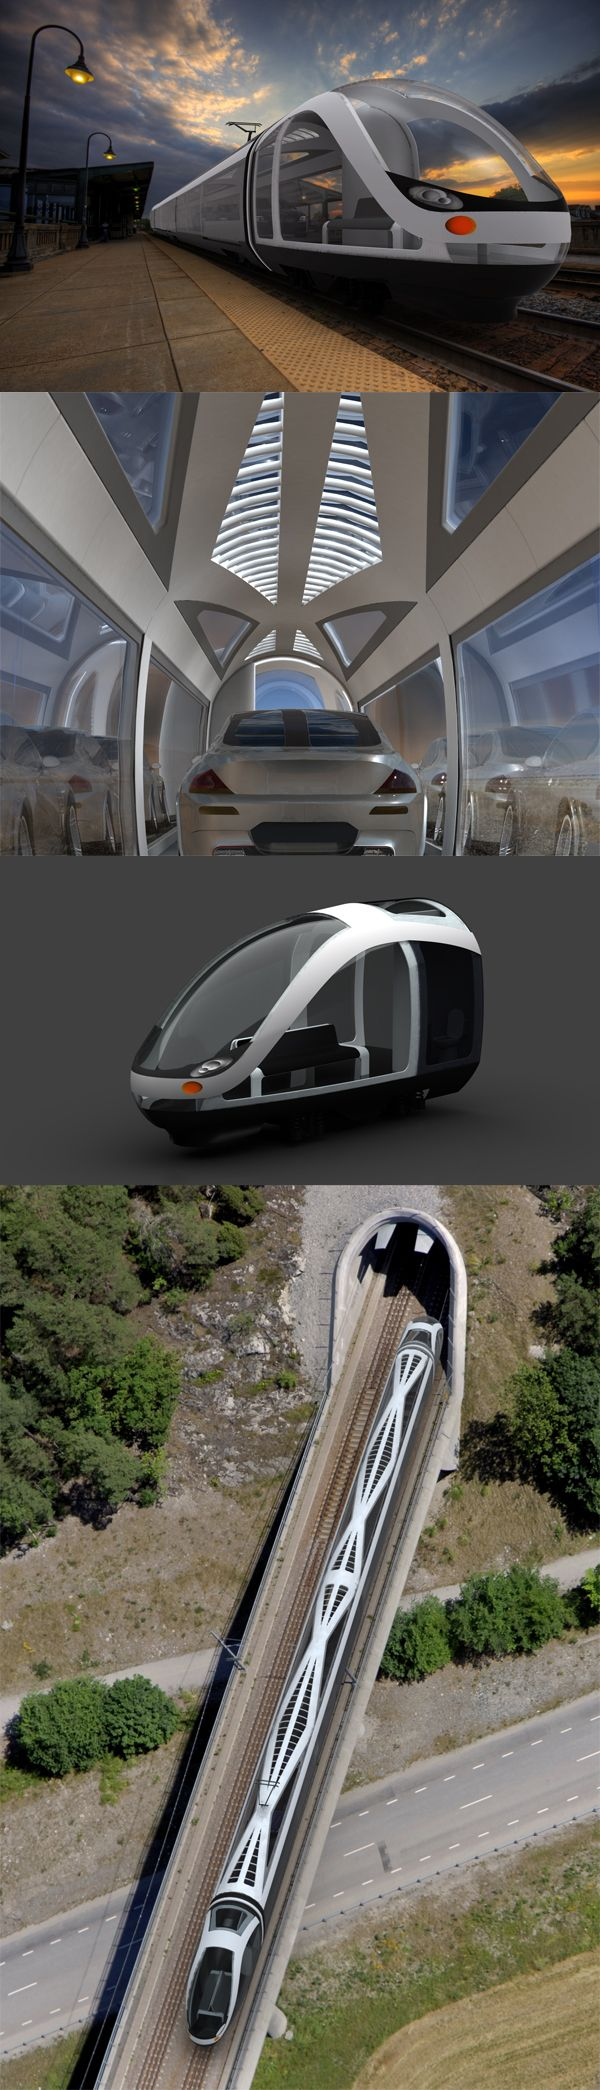 The futuristic Auto Train [ AutonomousAvionics.com ] #new #avionics #technology